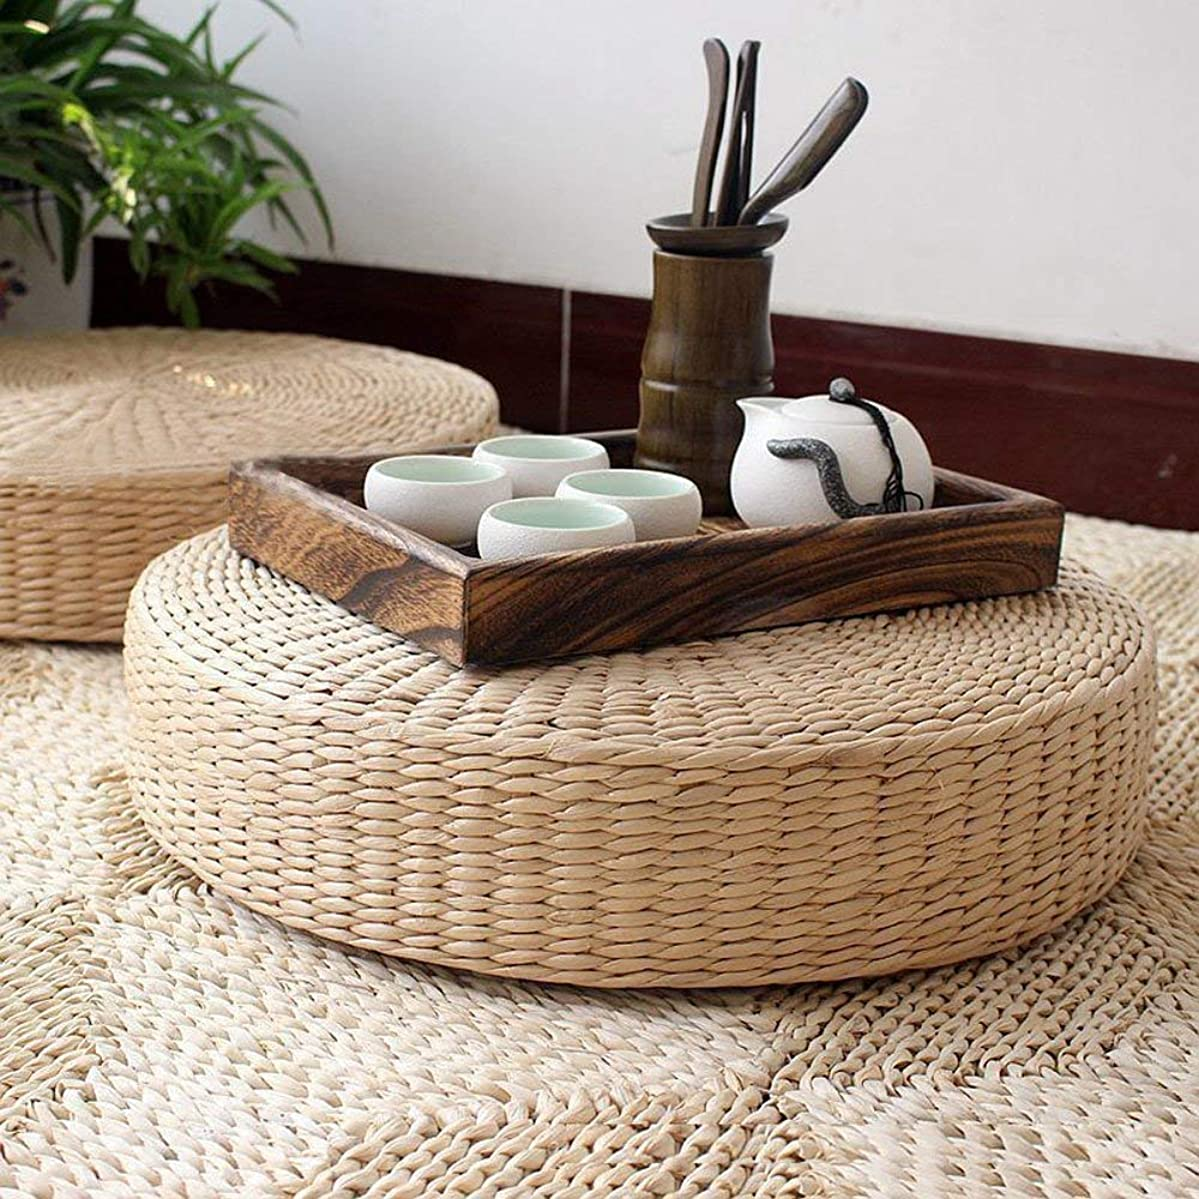 LB Japanese Style Handcrafted Eco-Friendly Breathable Padded Knitted Straw Flat Seat Cushion,Hand Woven Tatami Cushion Best for Zen,Yoga Practice or Meditation (Z 15.8''X4.3'')